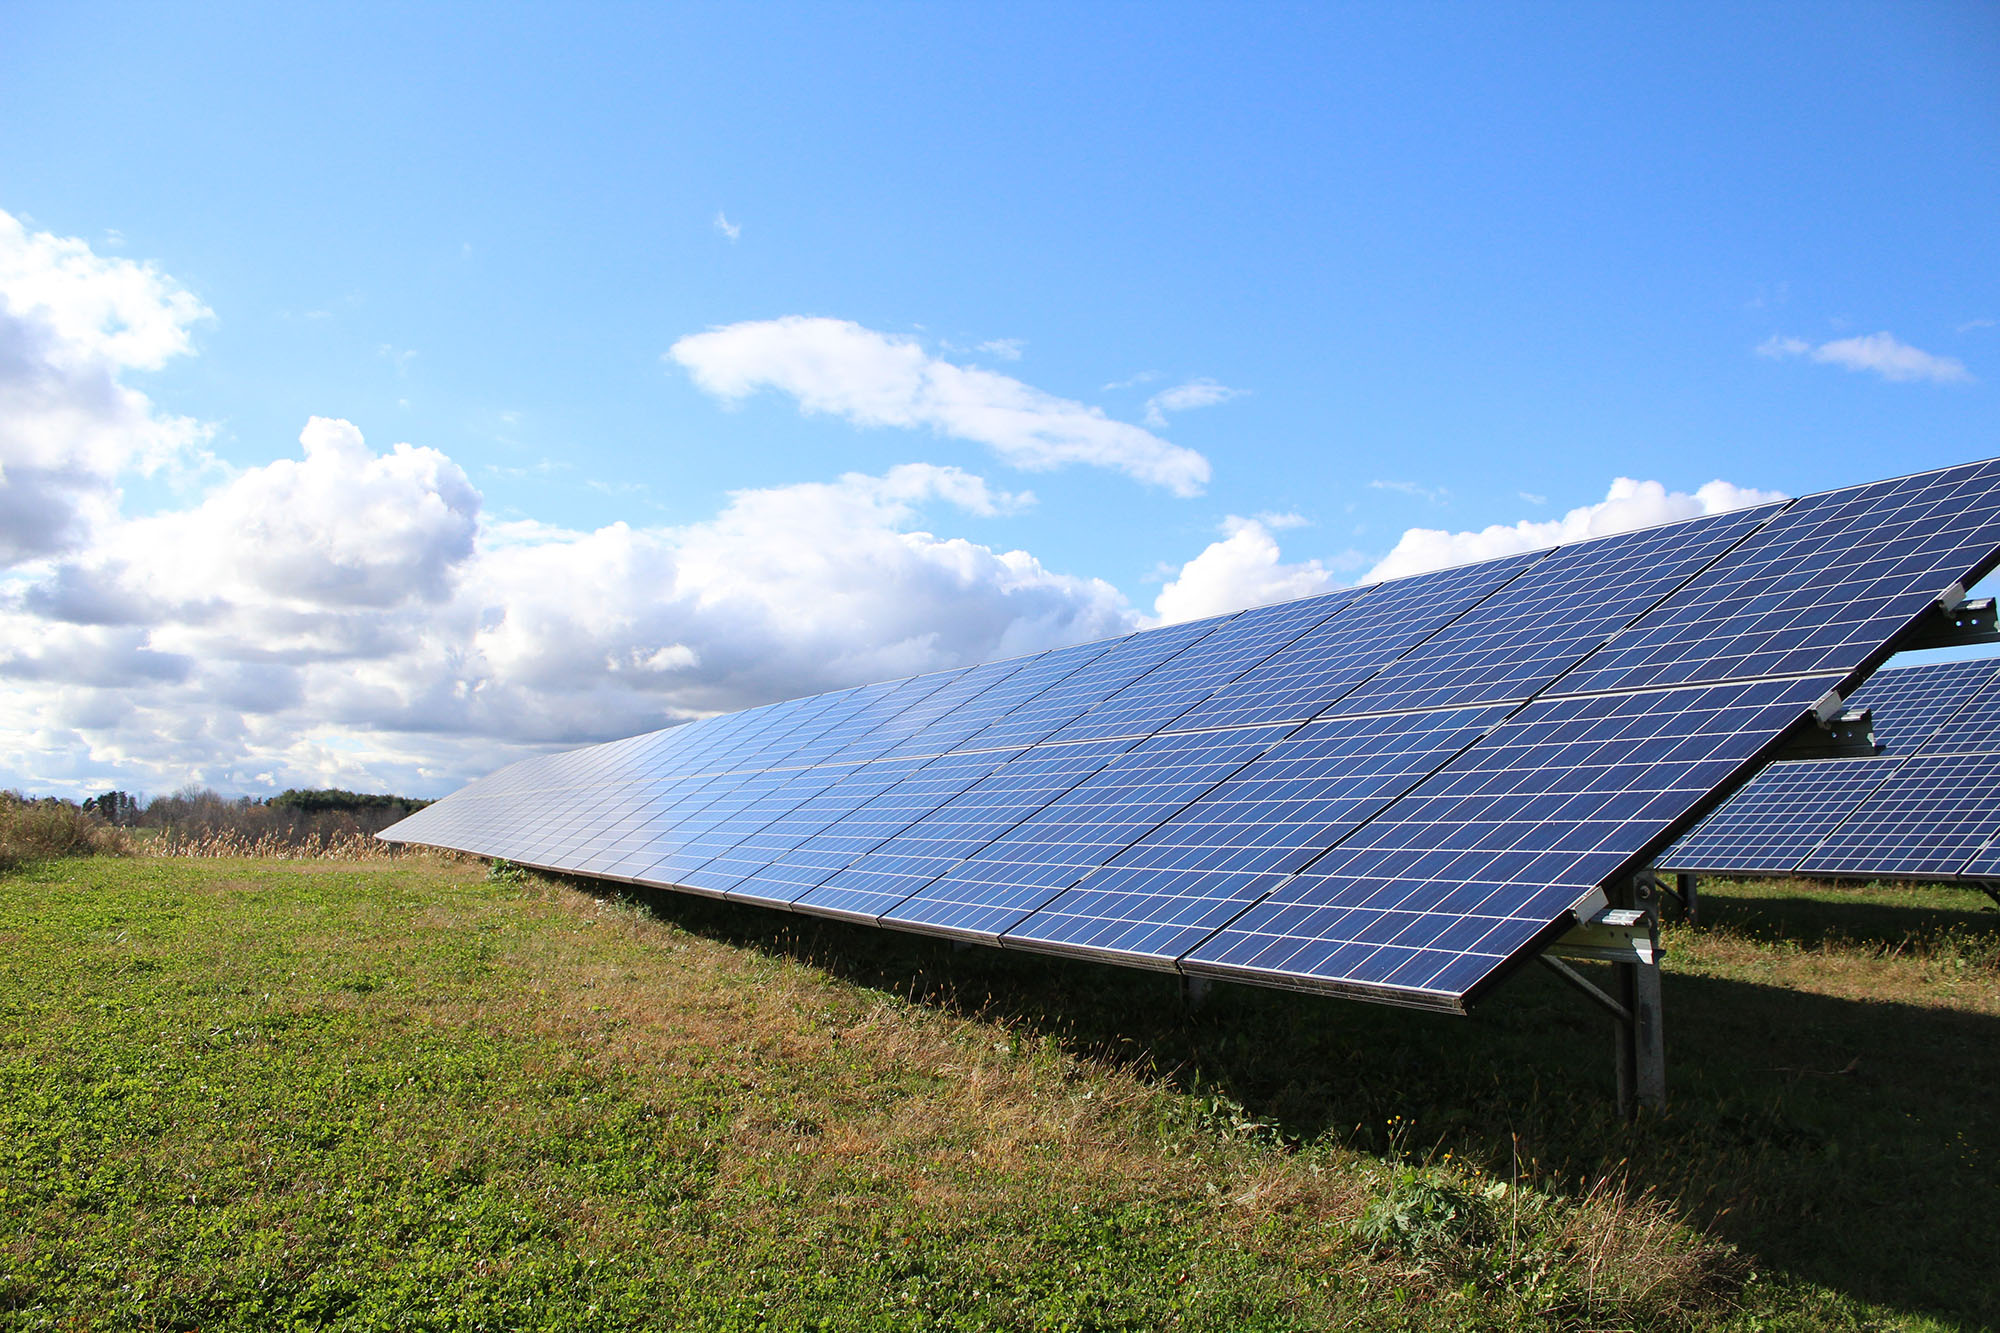 Commercial Solar in Rochester: Why Partner With GreenSpark Solar?